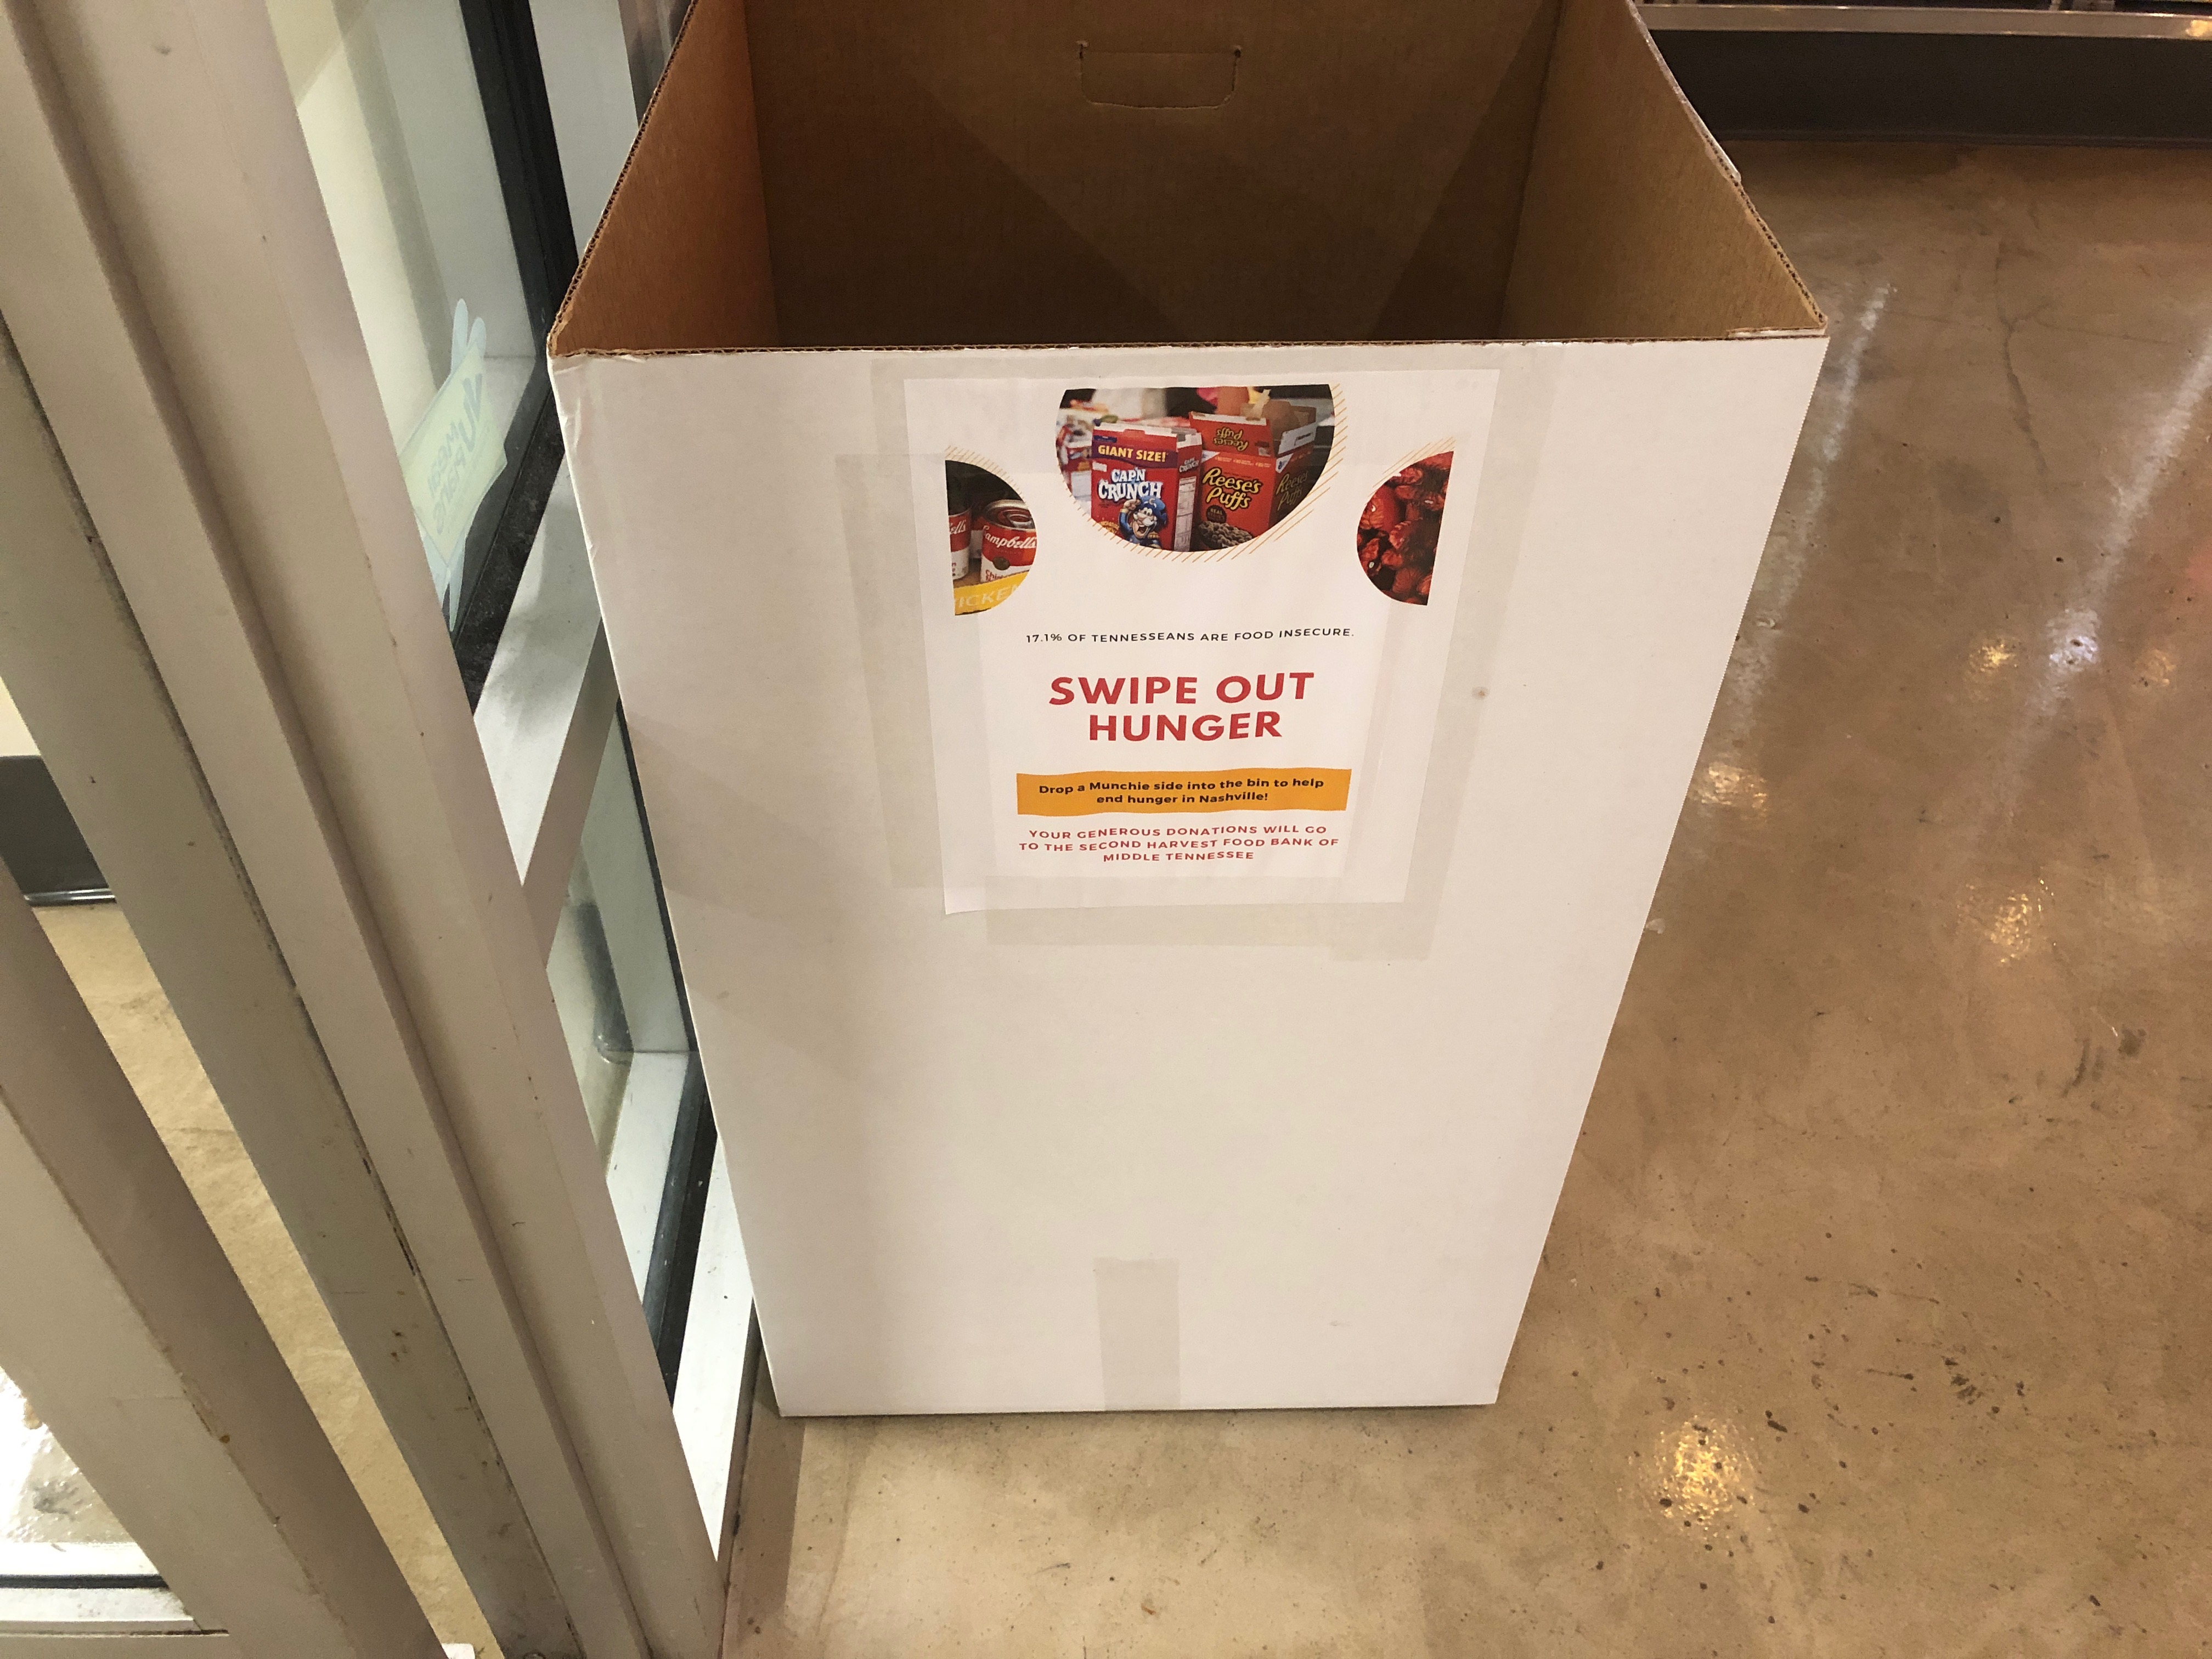 Bins are placed in all Munchie Mart locations except for Rand to collect donations. (Photo by Rachel Friedman)